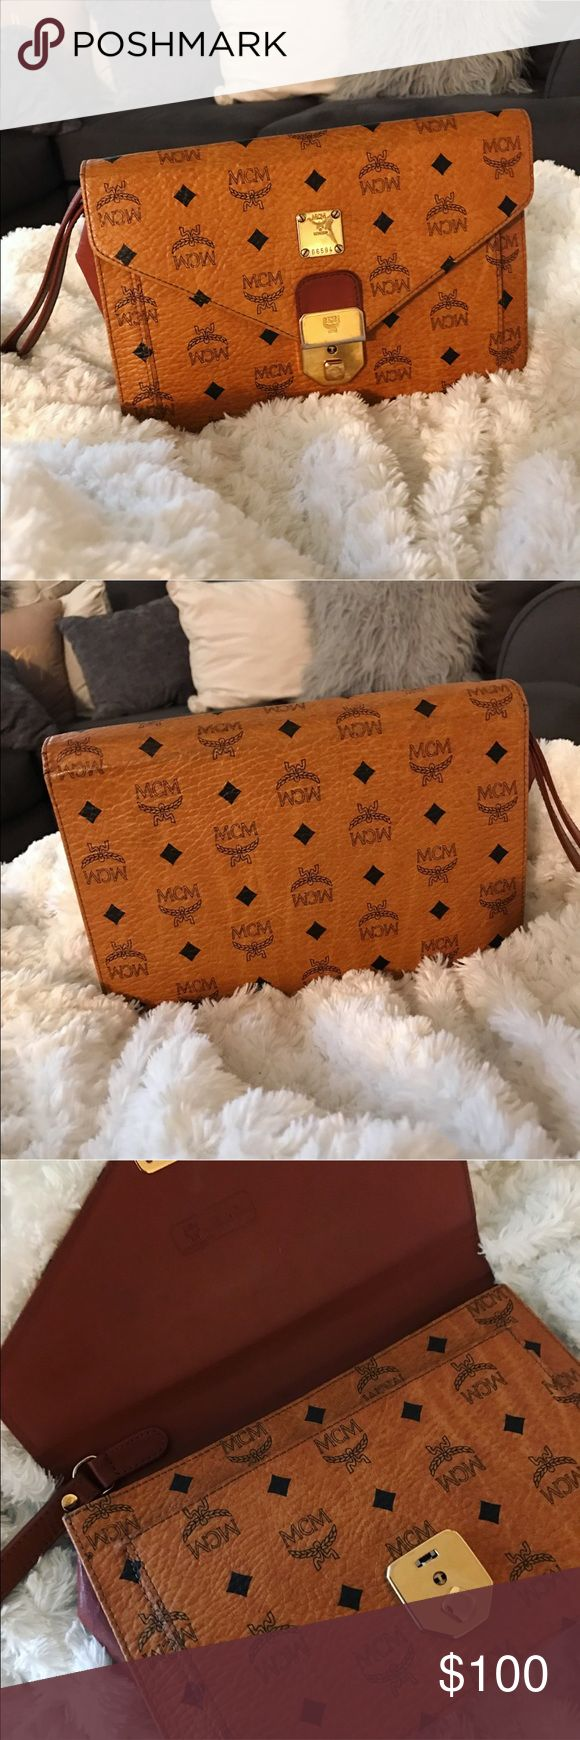 Mcm clutch! Can you say! The 90's! PERFECT ACCESSORY to any throwback fit! 😍 MCM Bags Clutches & Wristlets